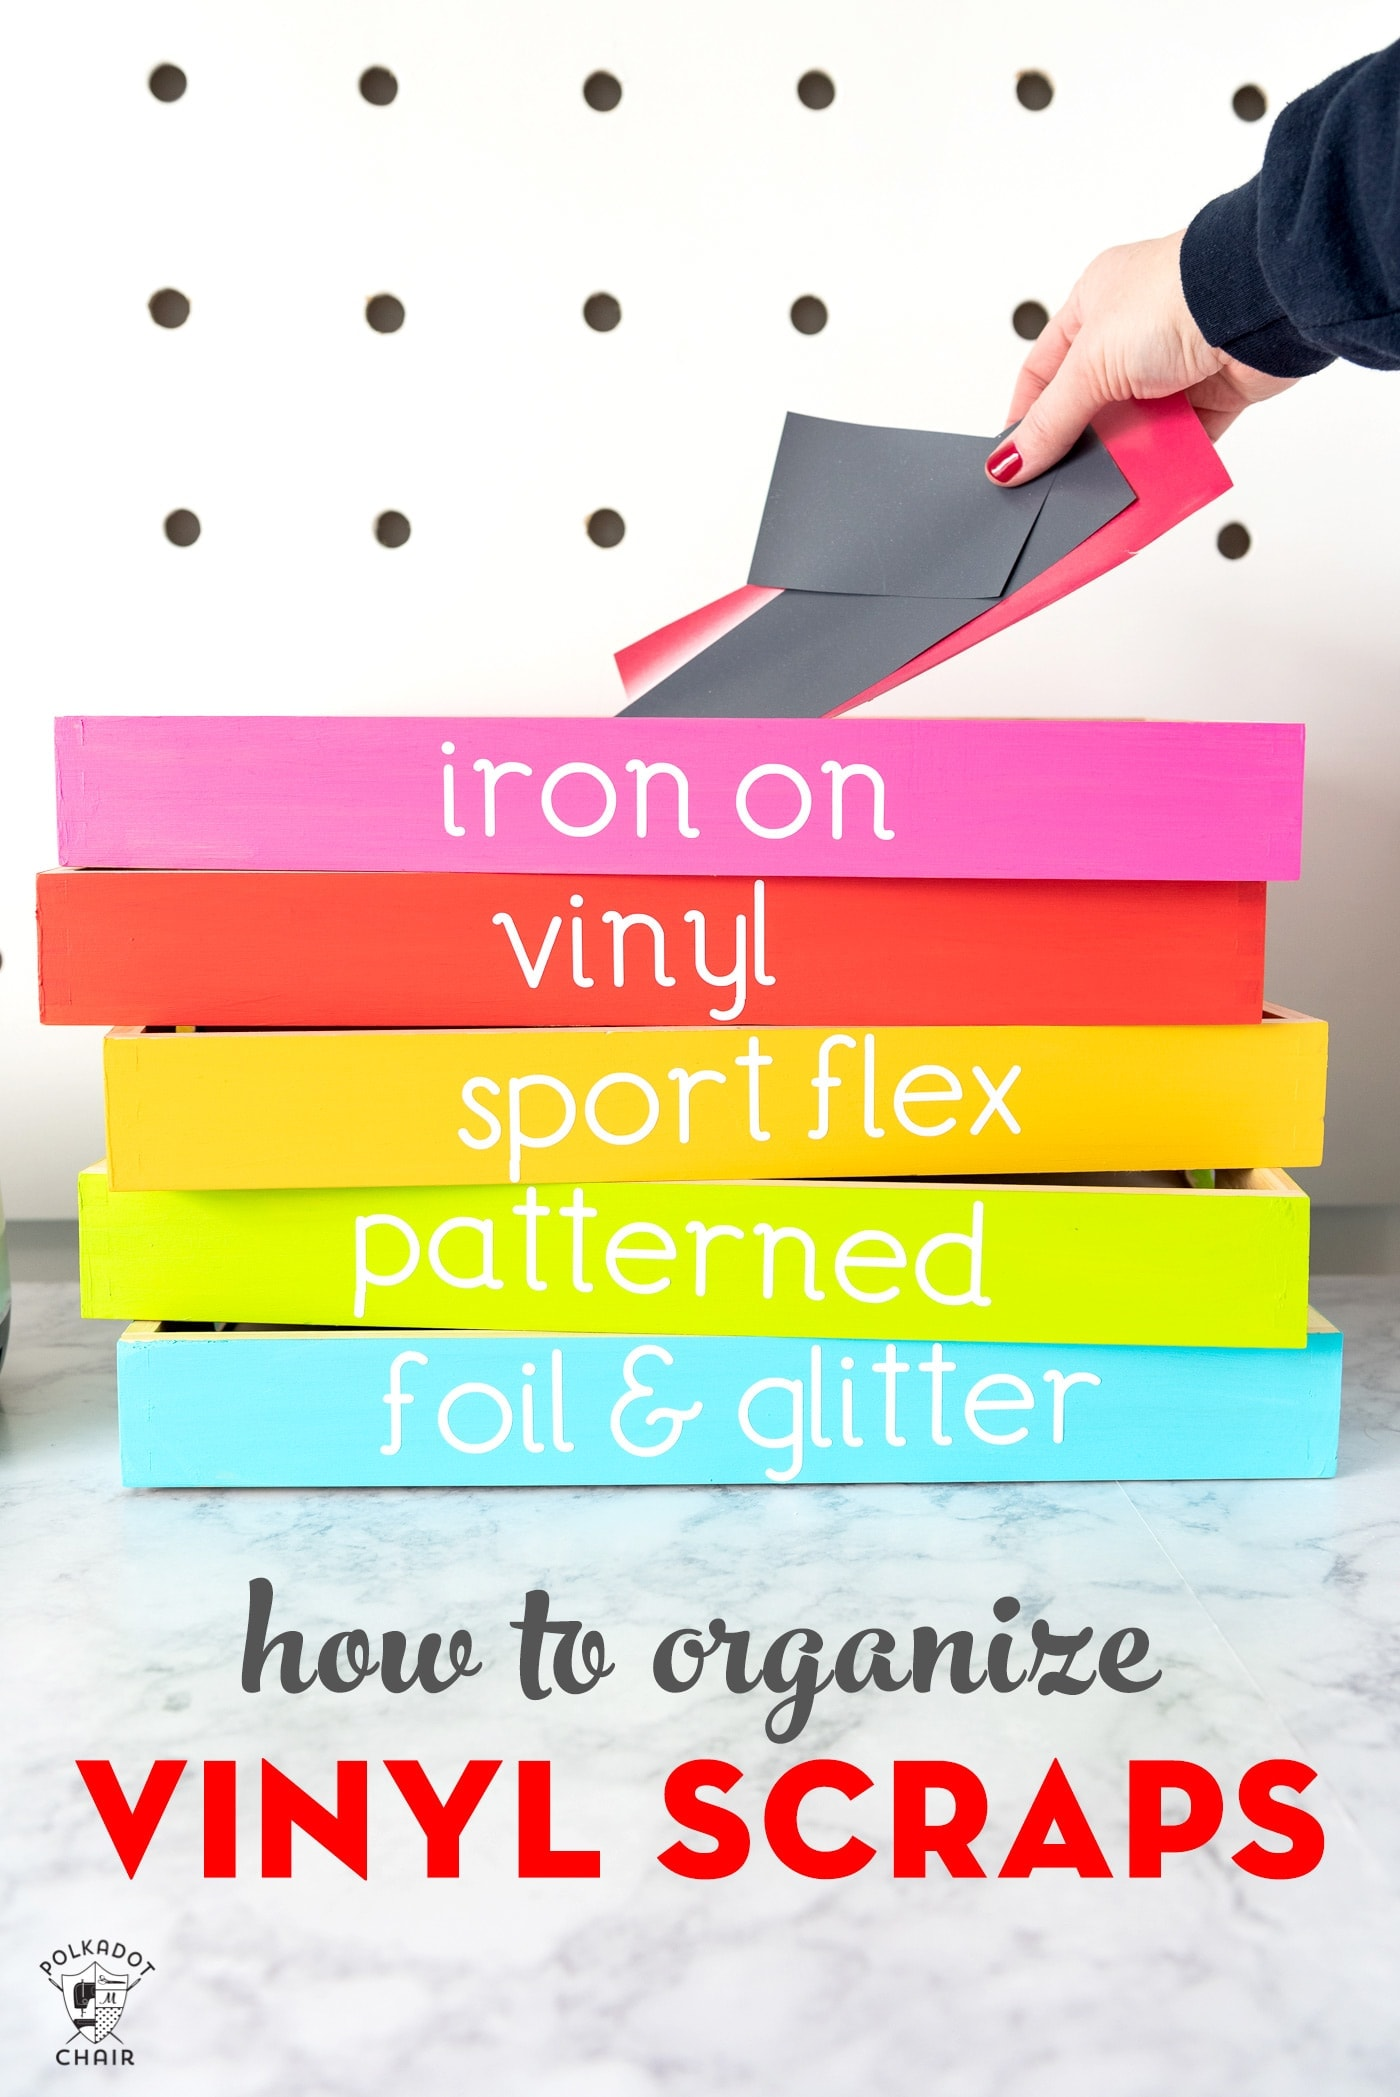 Organize Your Vinyl Scraps With This Colorful Craft Room Storage Tutorial